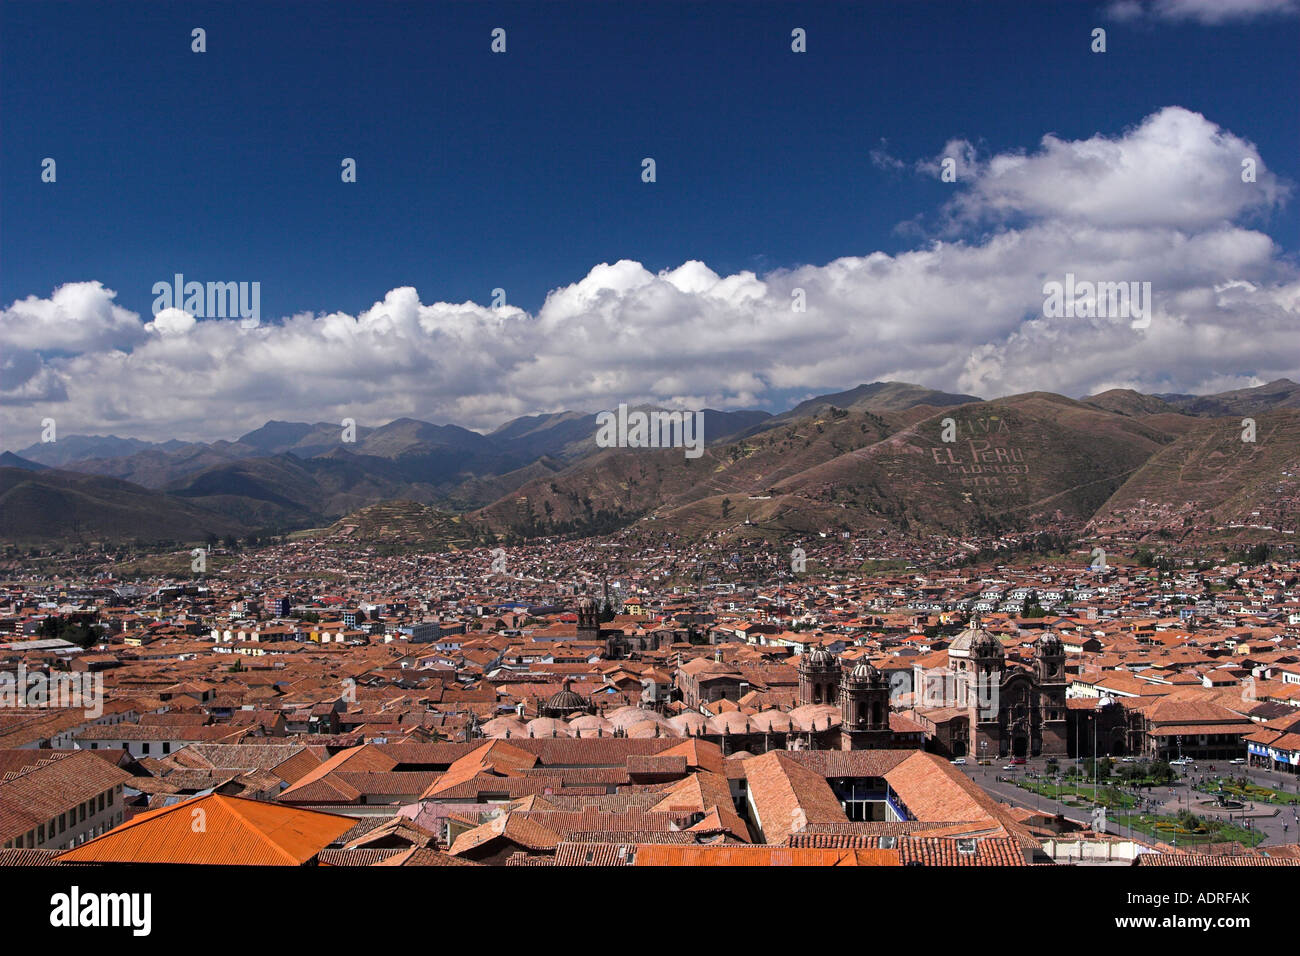 Research and Markets Report Shines on Peru Real Estate ...